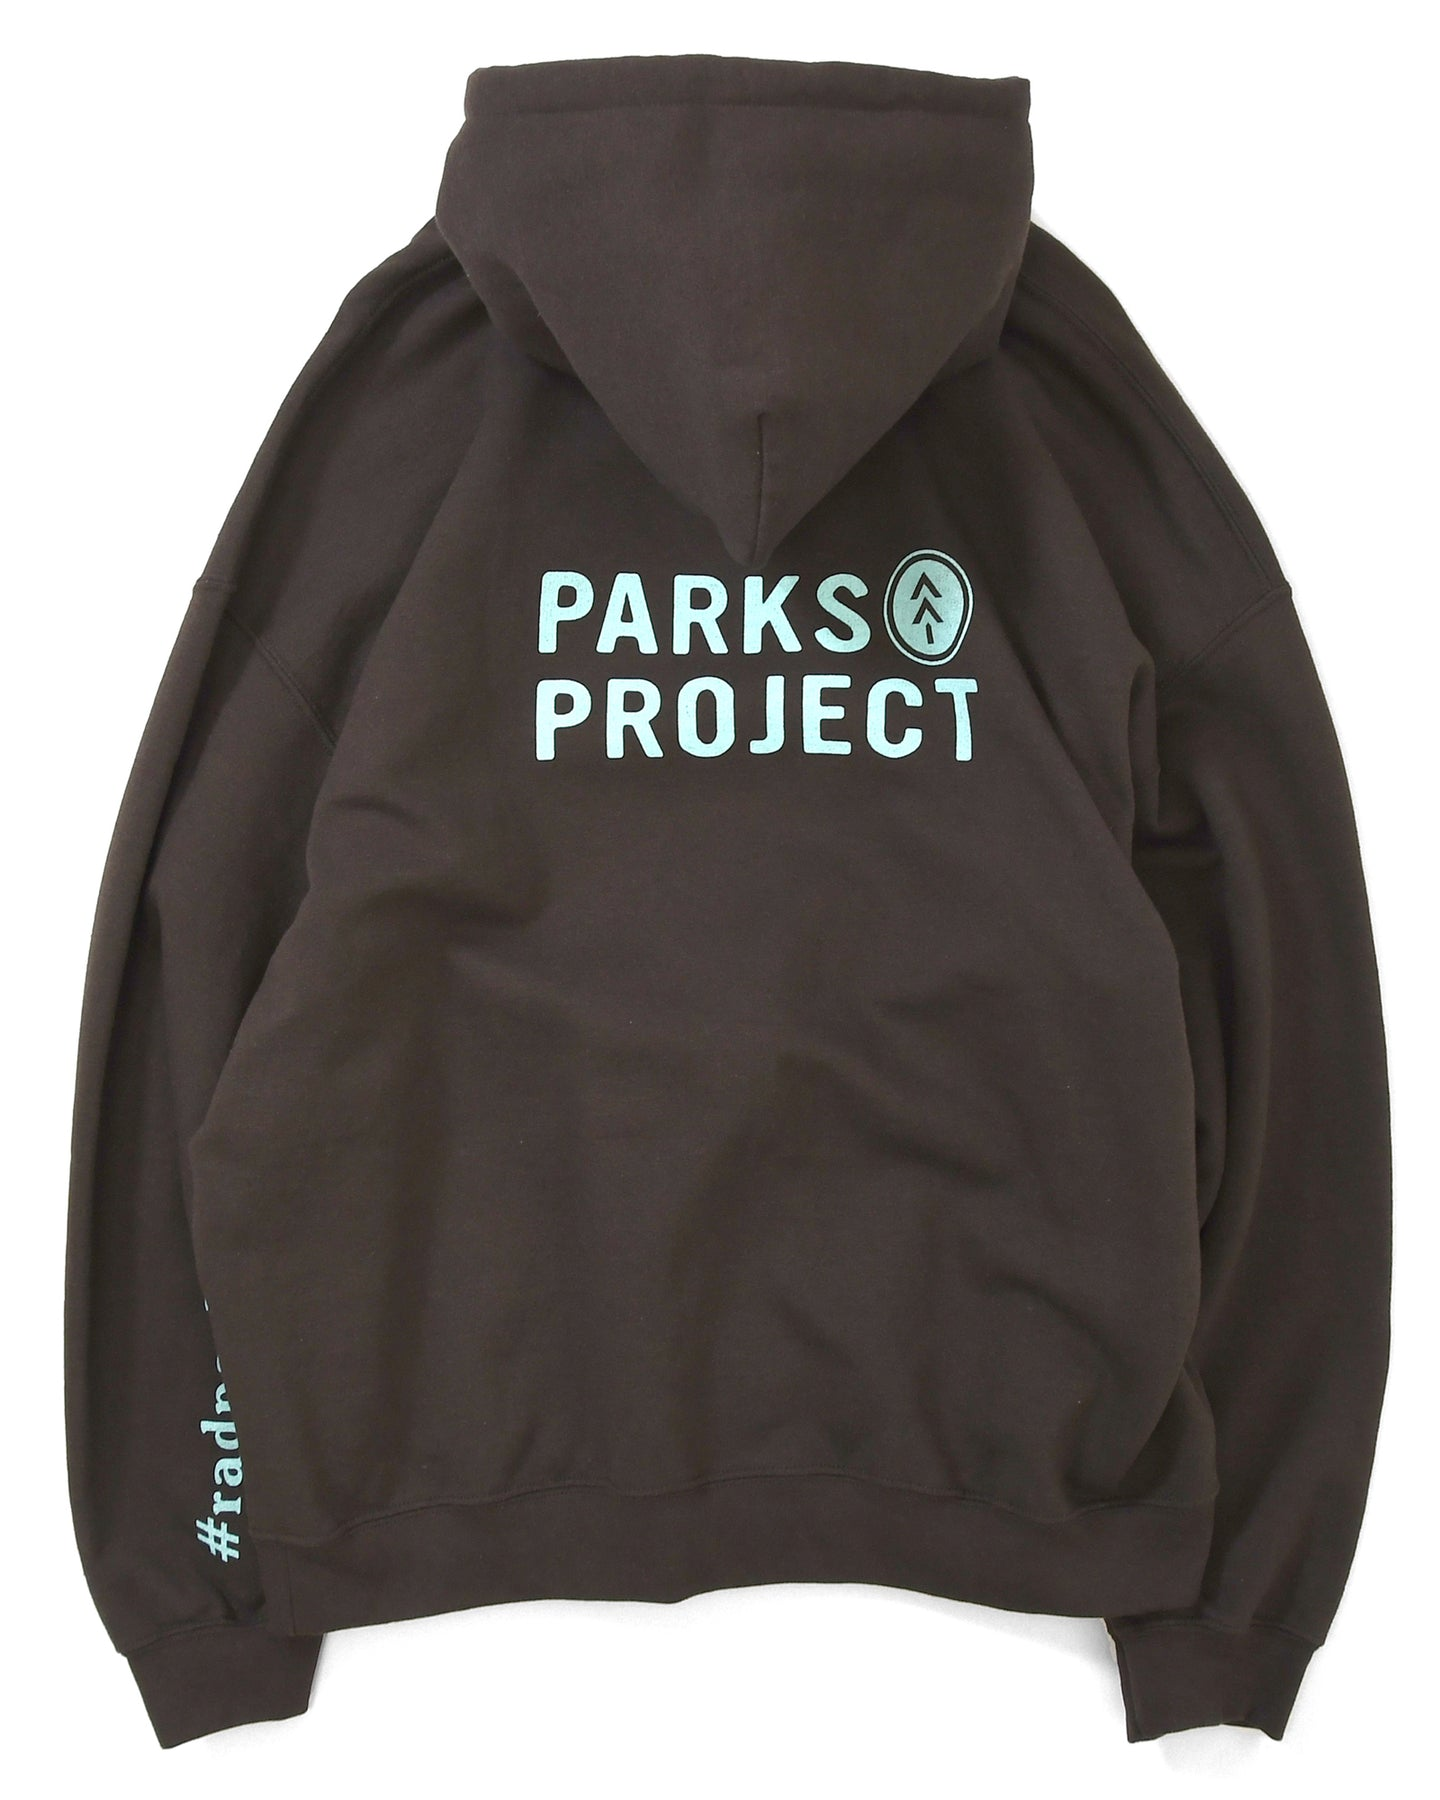 PARKS PROJECT LOGO HOODIE|21SS-013